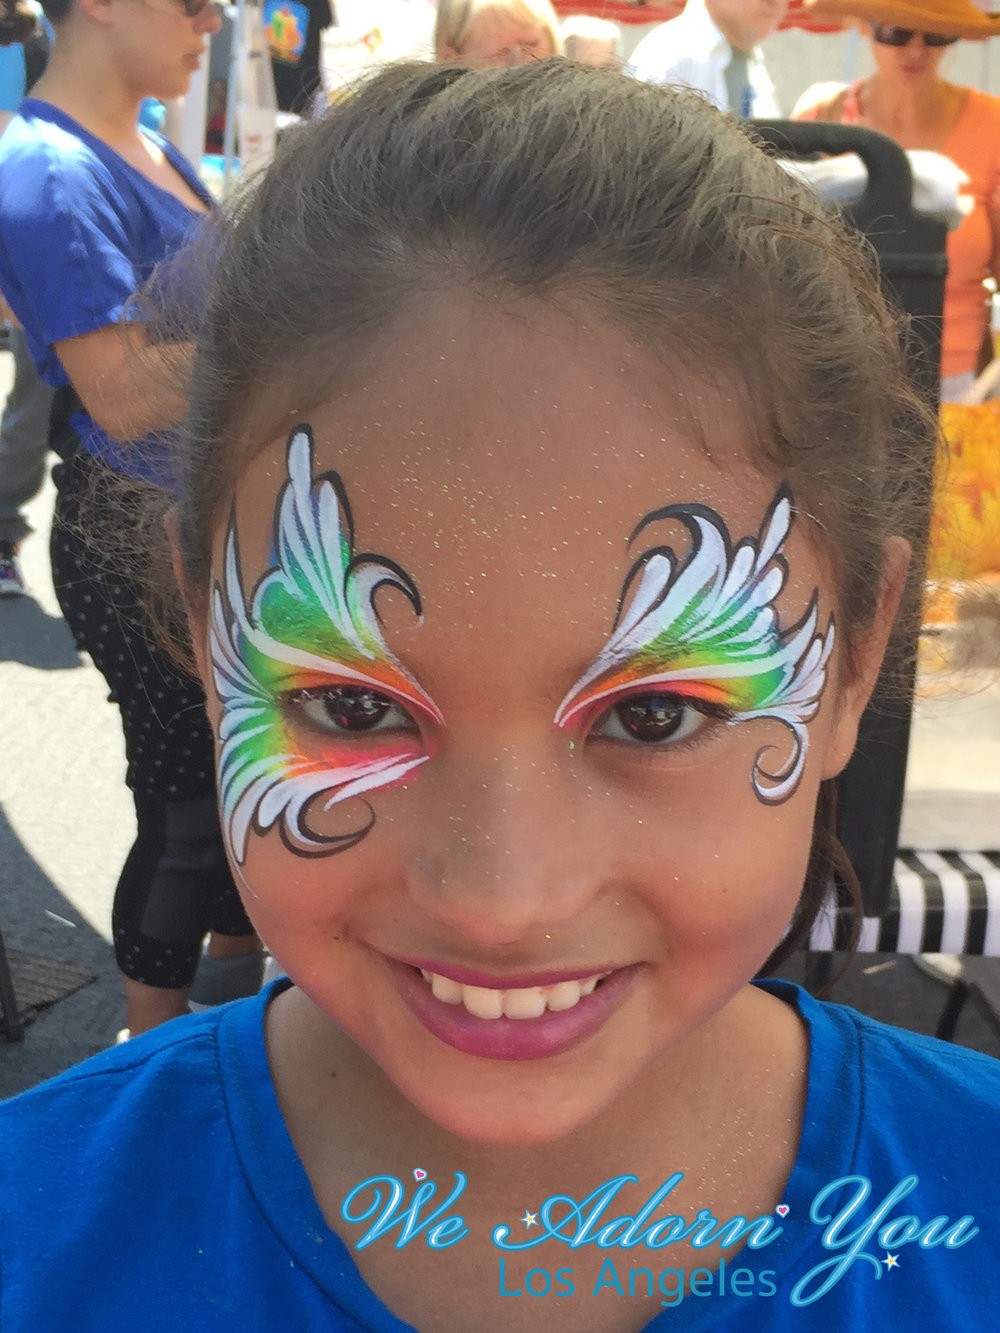 We Adorn You Los Angeles Face Painting Rainbow design.jpg